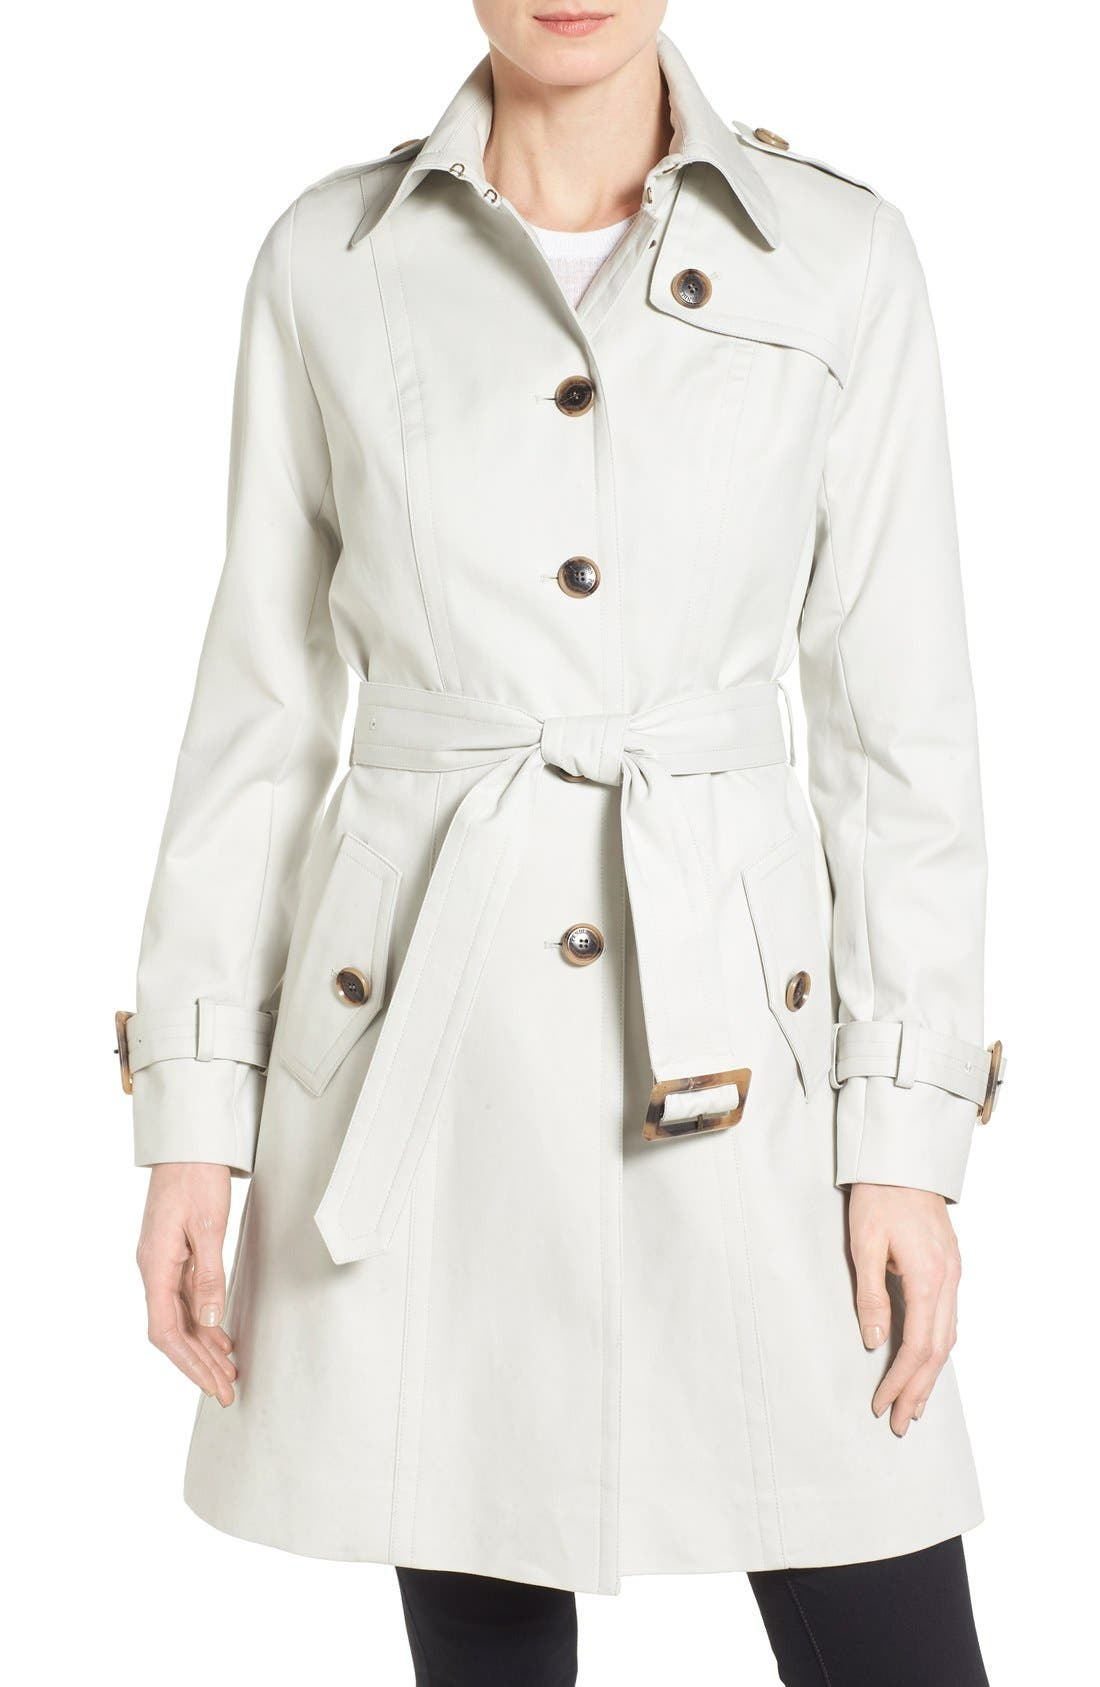 Main Image - Pendleton 'Pacific Crest' Single Breasted Trench Coat (Regular & Petite)